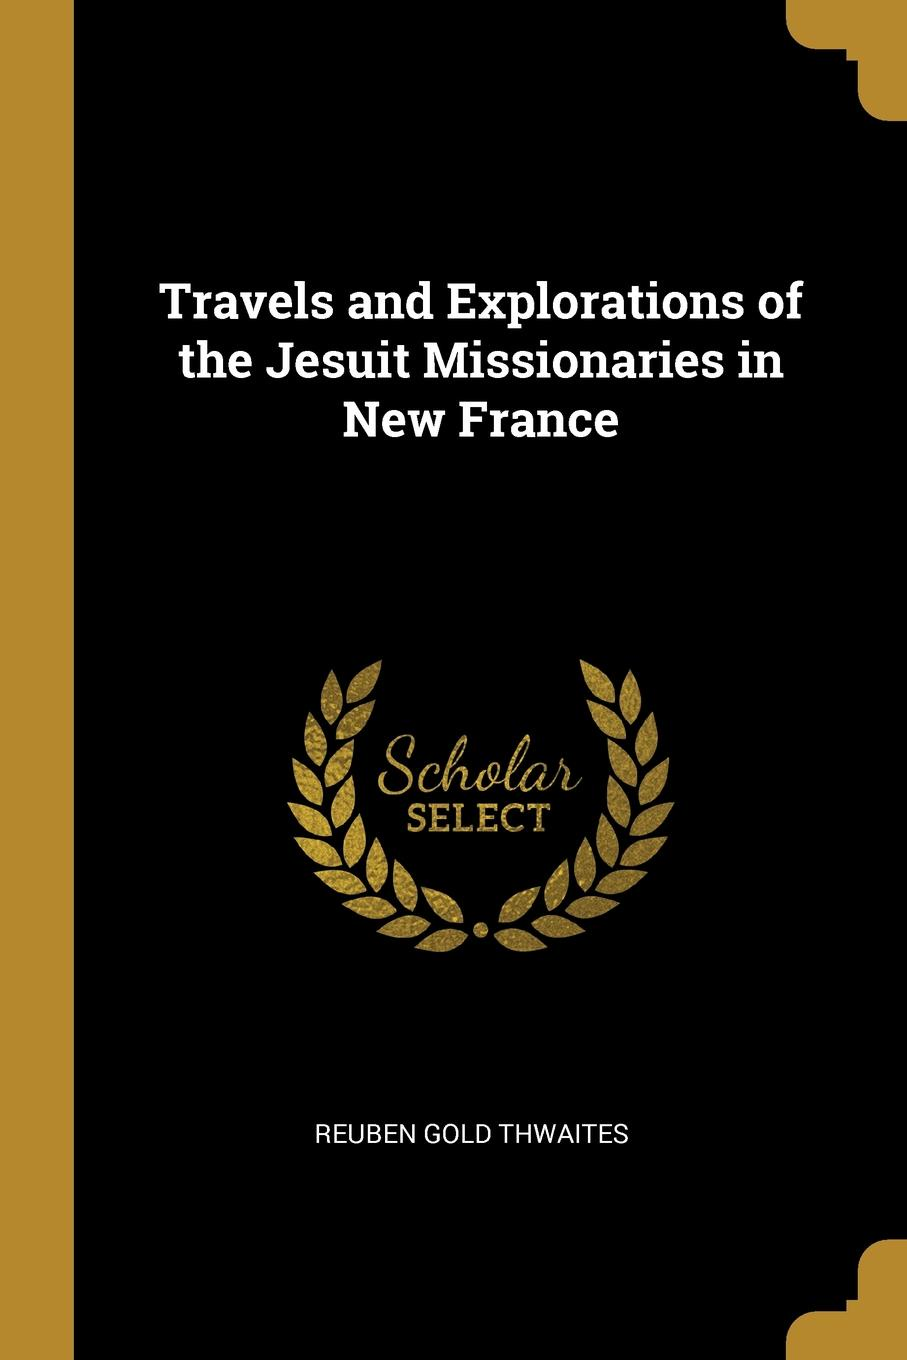 Reuben Gold Thwaites Travels and Explorations of the Jesuit Missionaries in New France